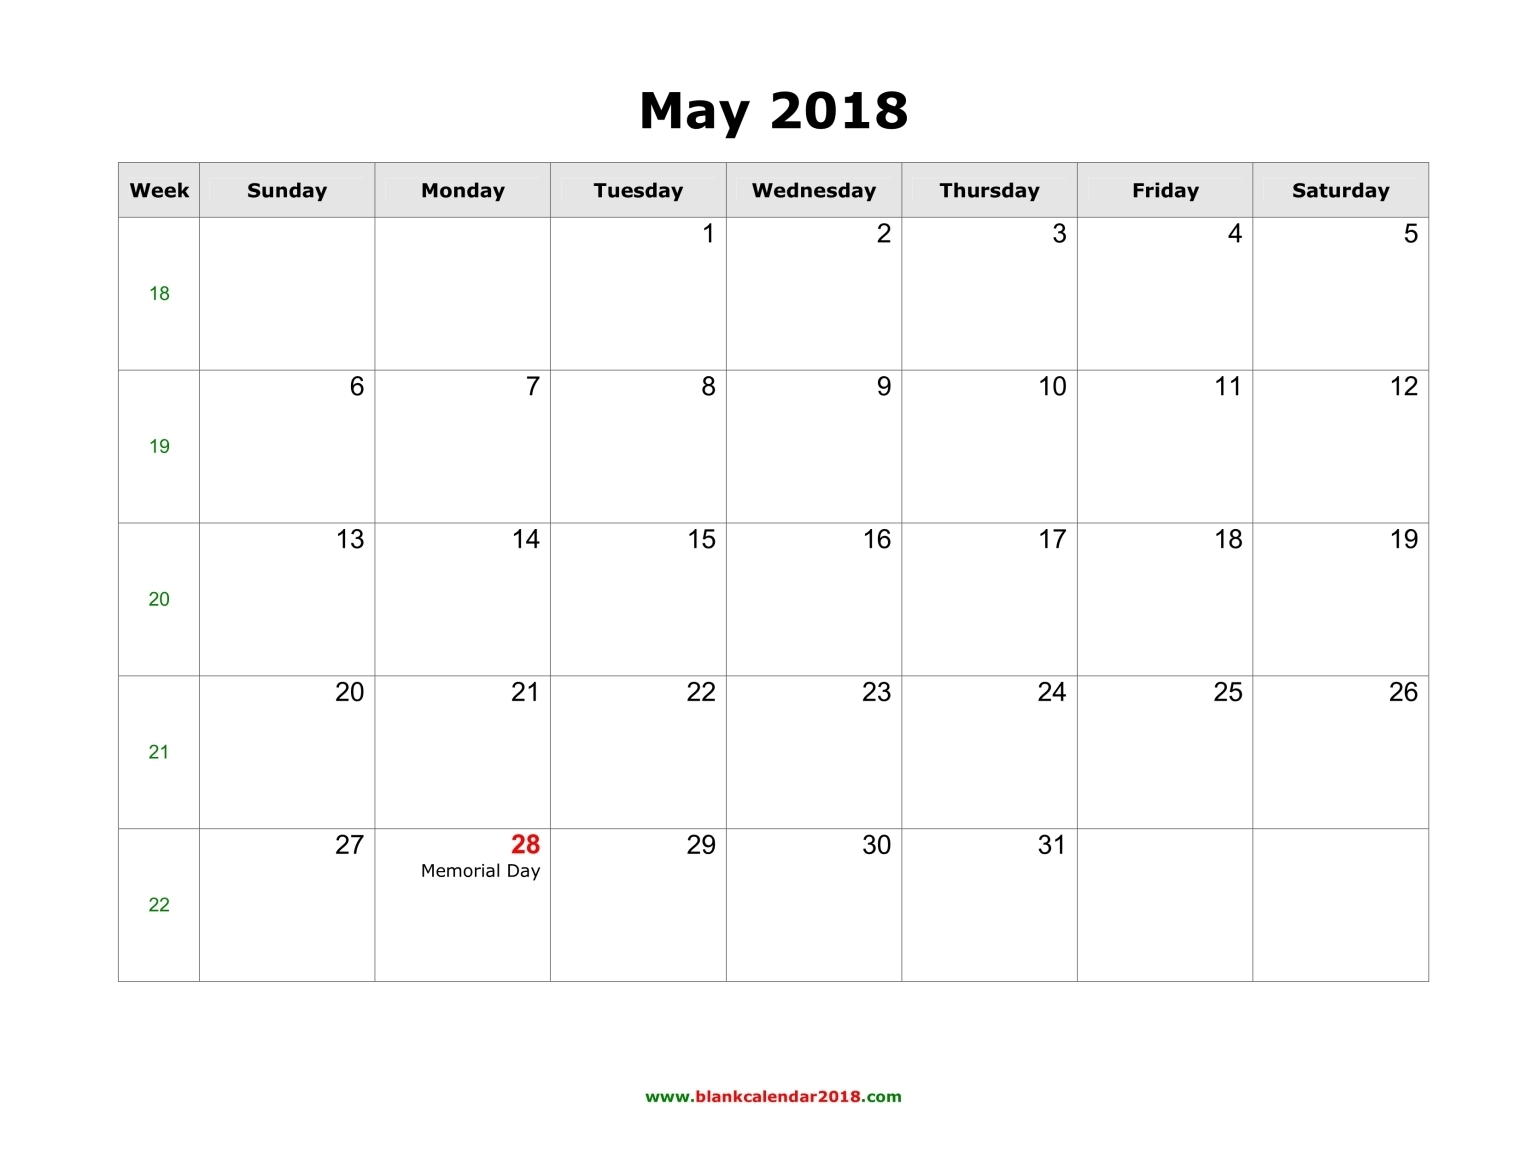 May 2018 Calendar blank holidays calendar may 2018 landscape